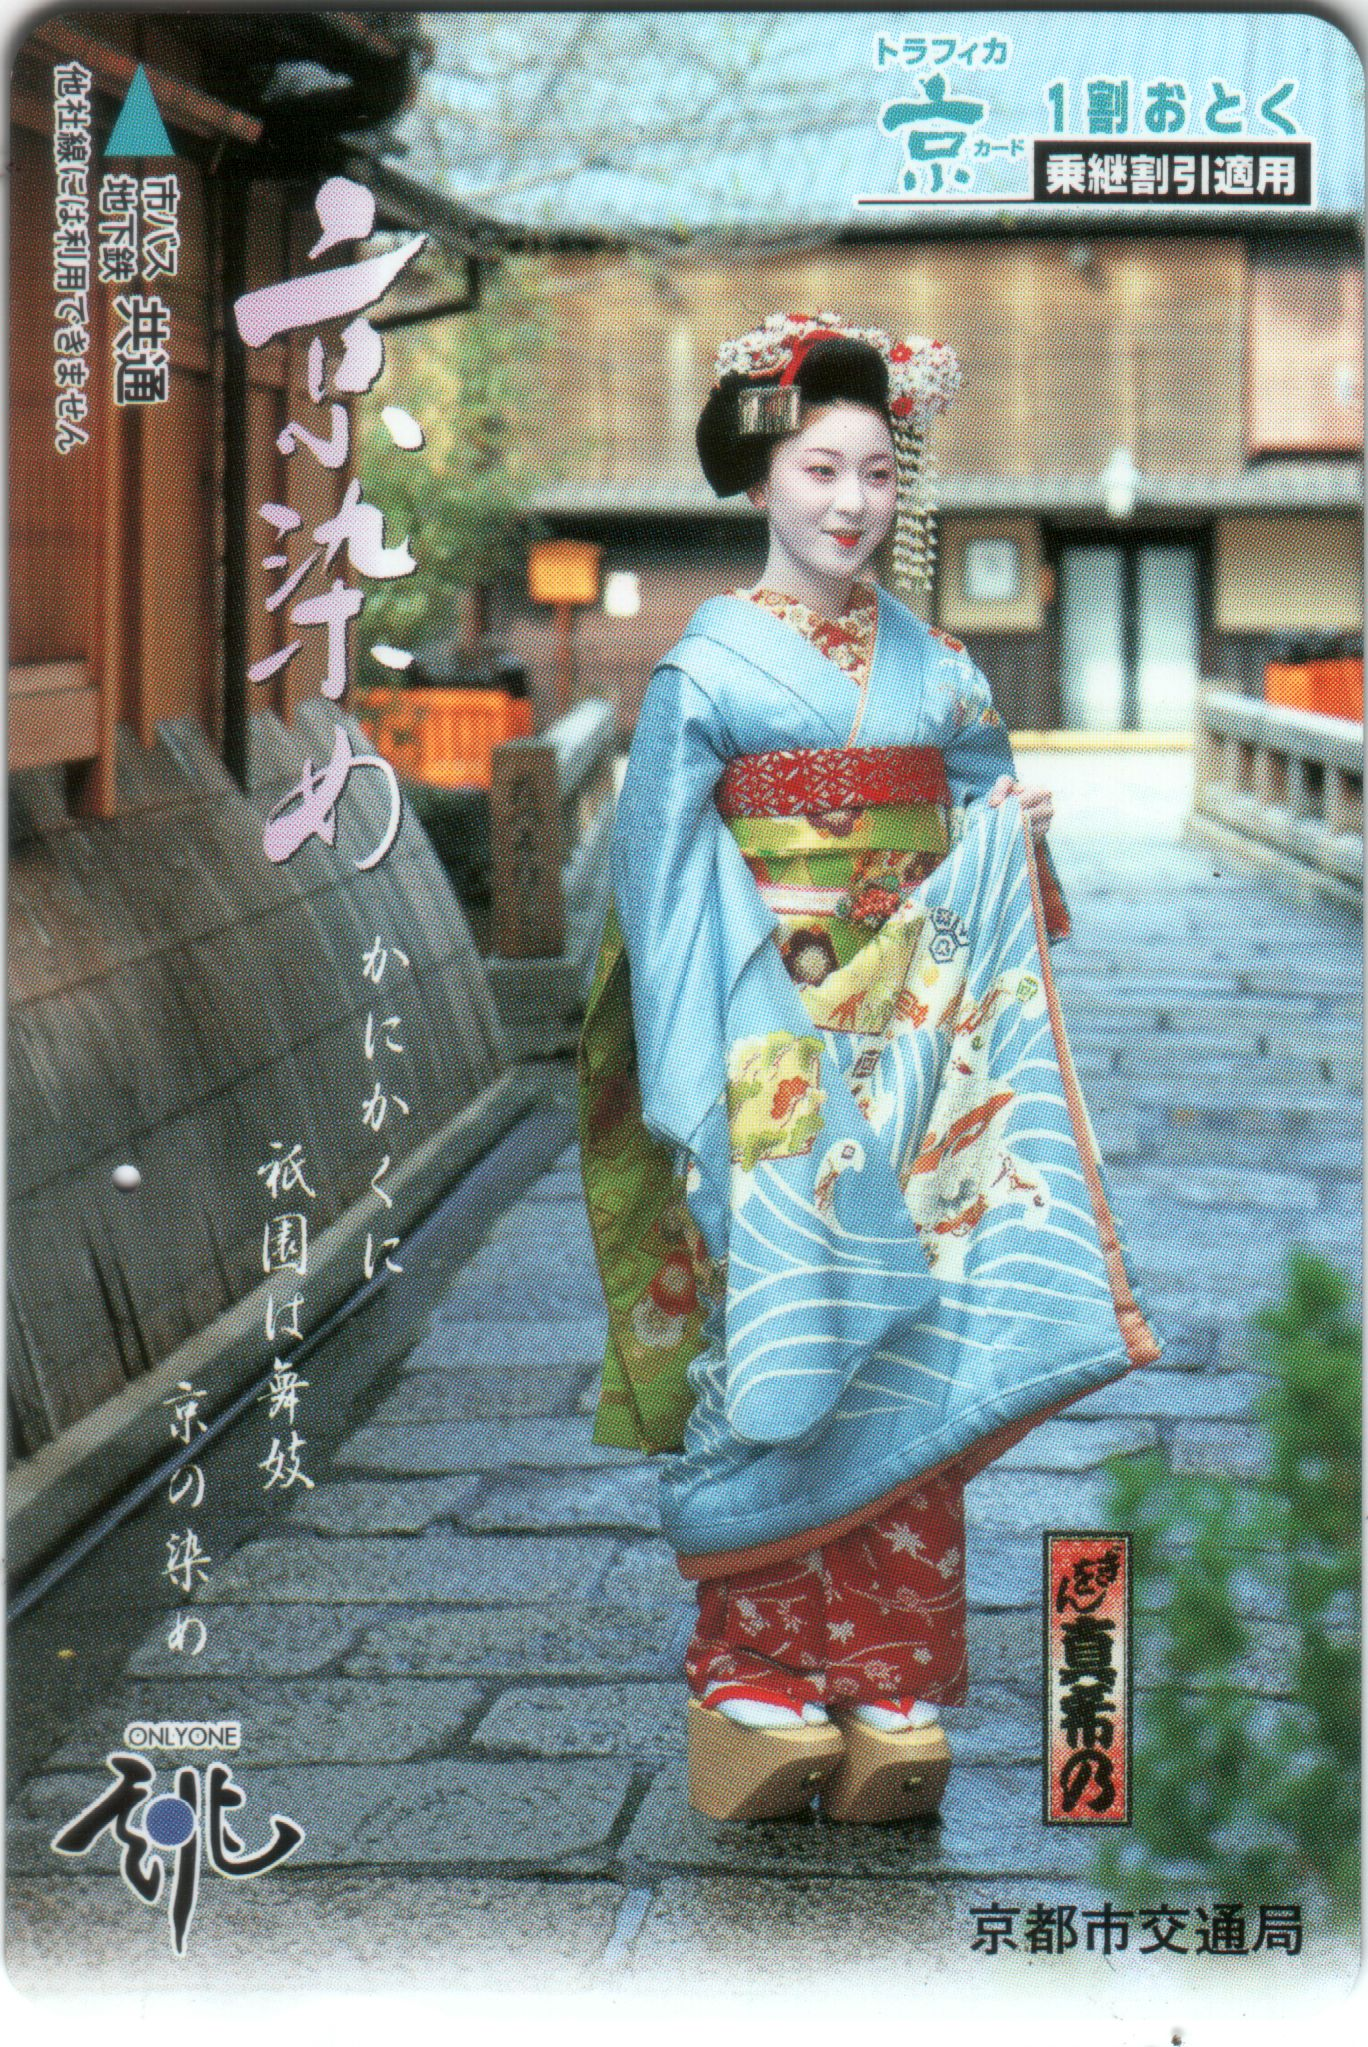 Miss Makino from Gion